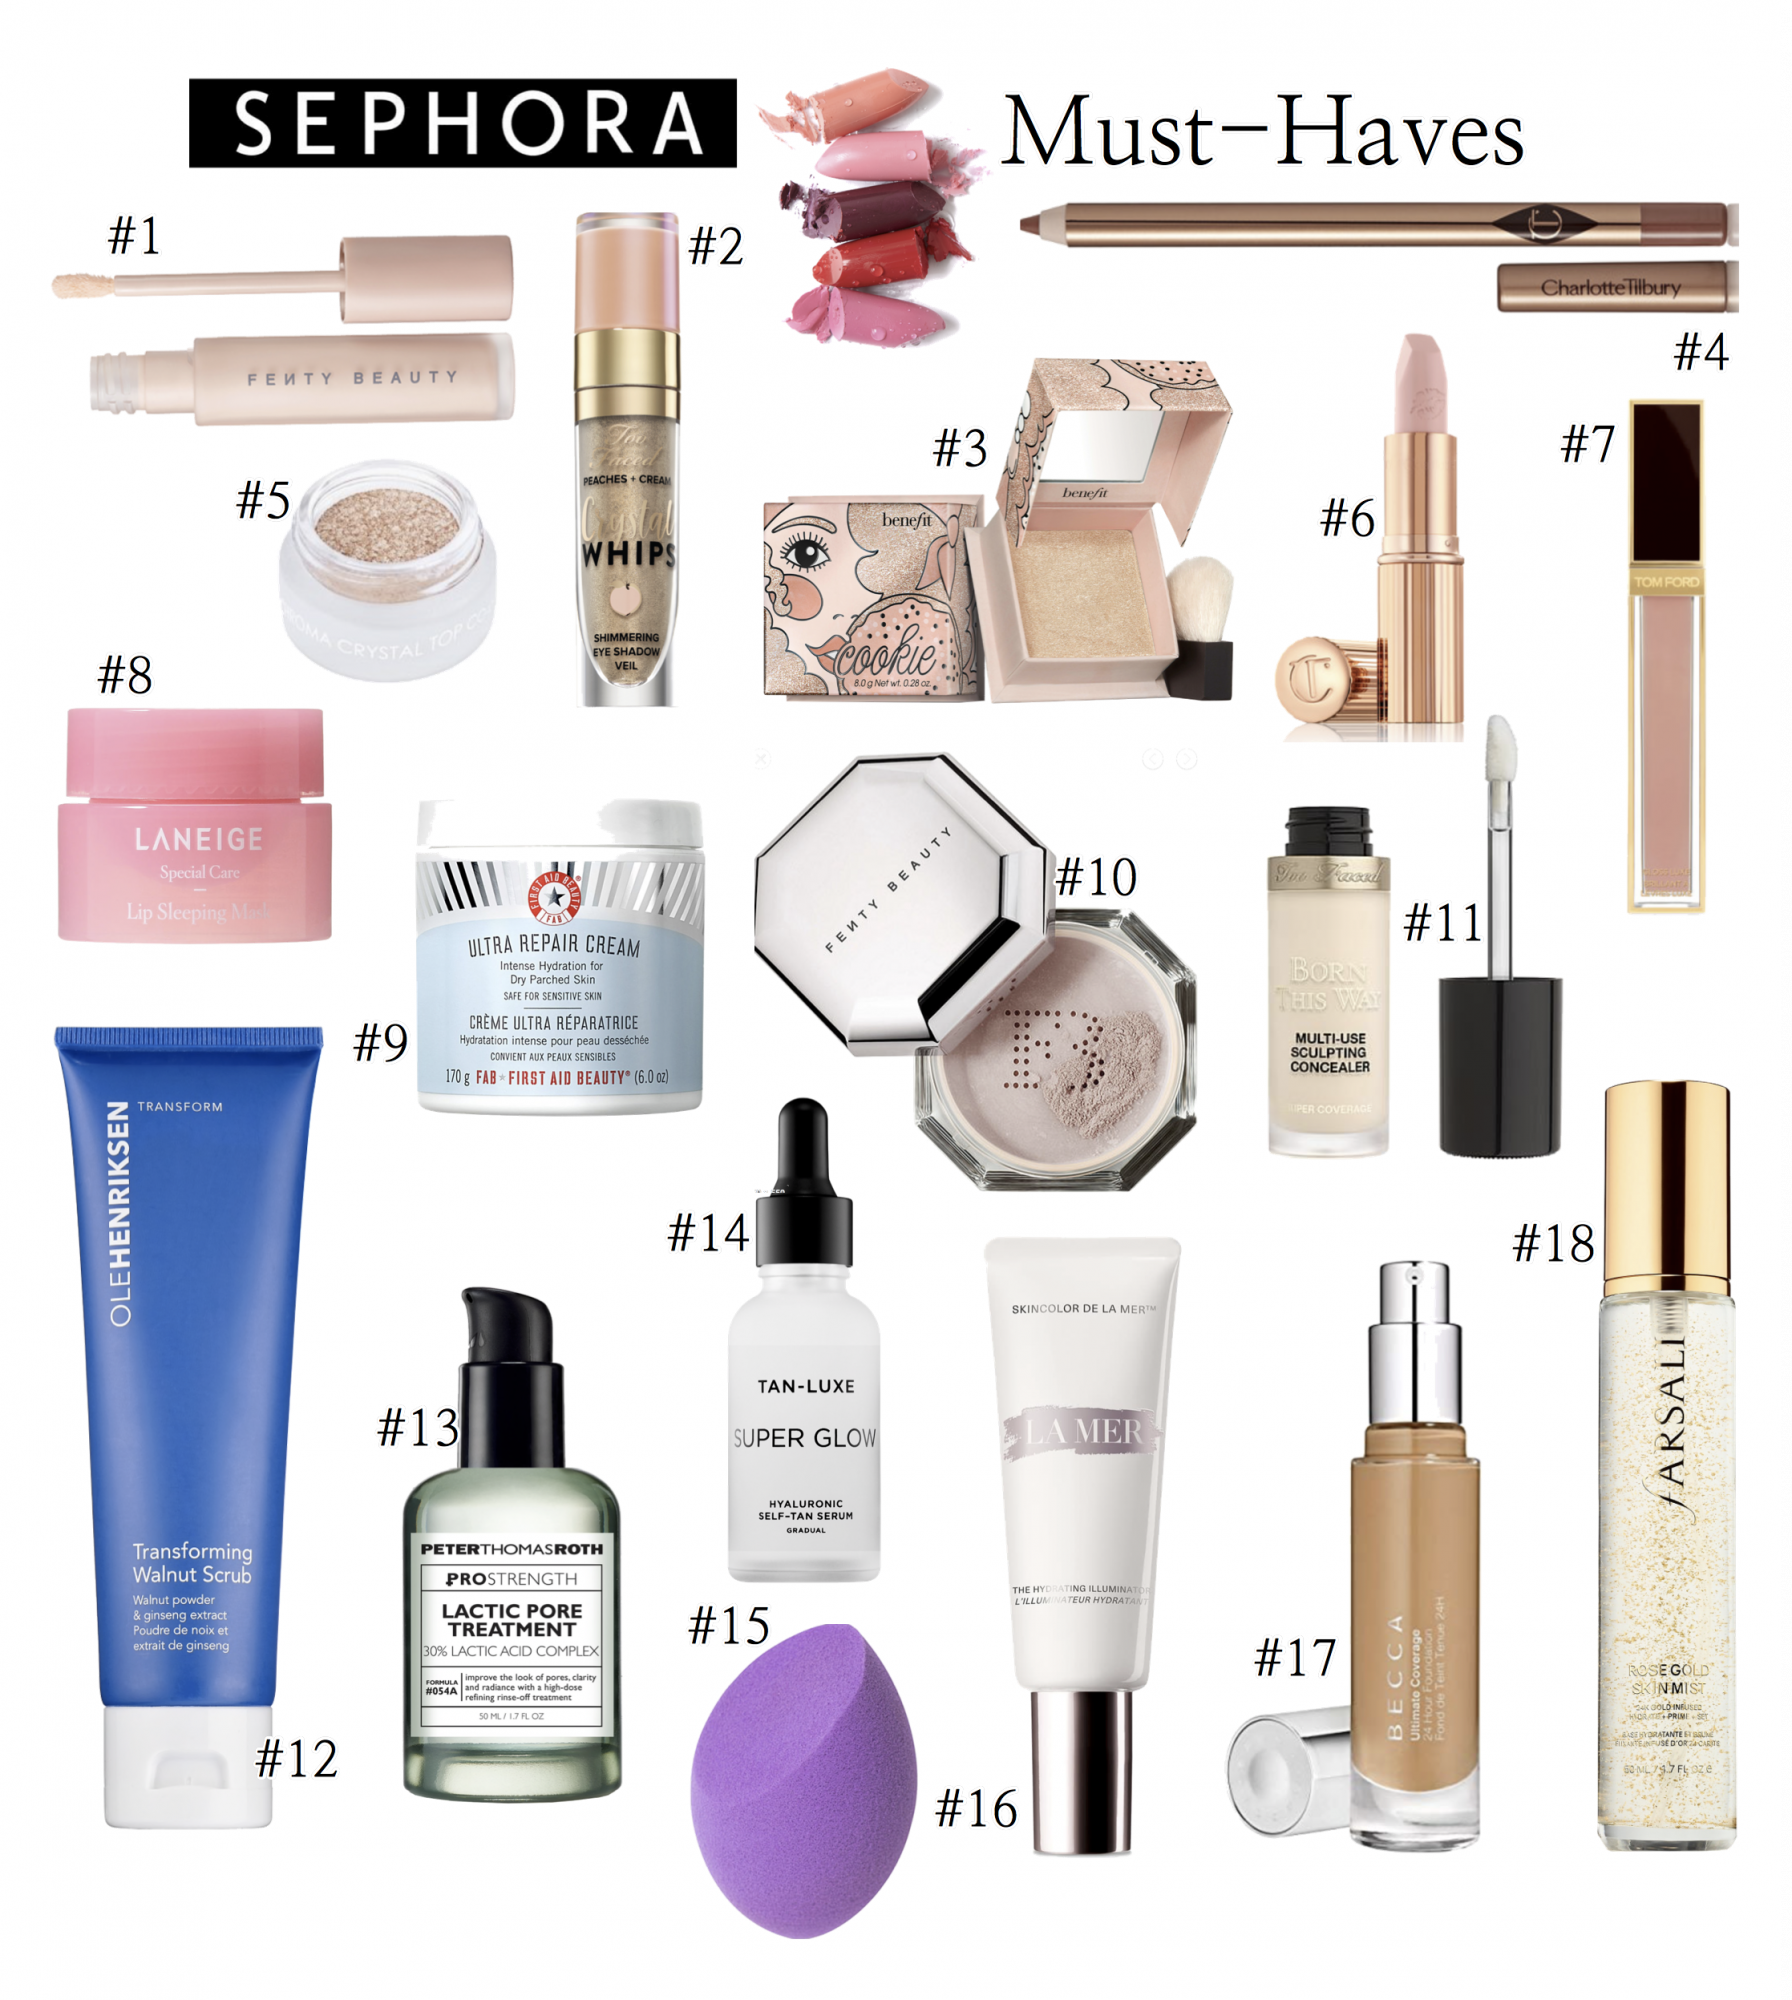 Sephora VIB Event Must-Haves + What I Purchased Already by popular Oklahoma beauty blog, The Sweetest Thing: collage image of various Sephora beauty products.